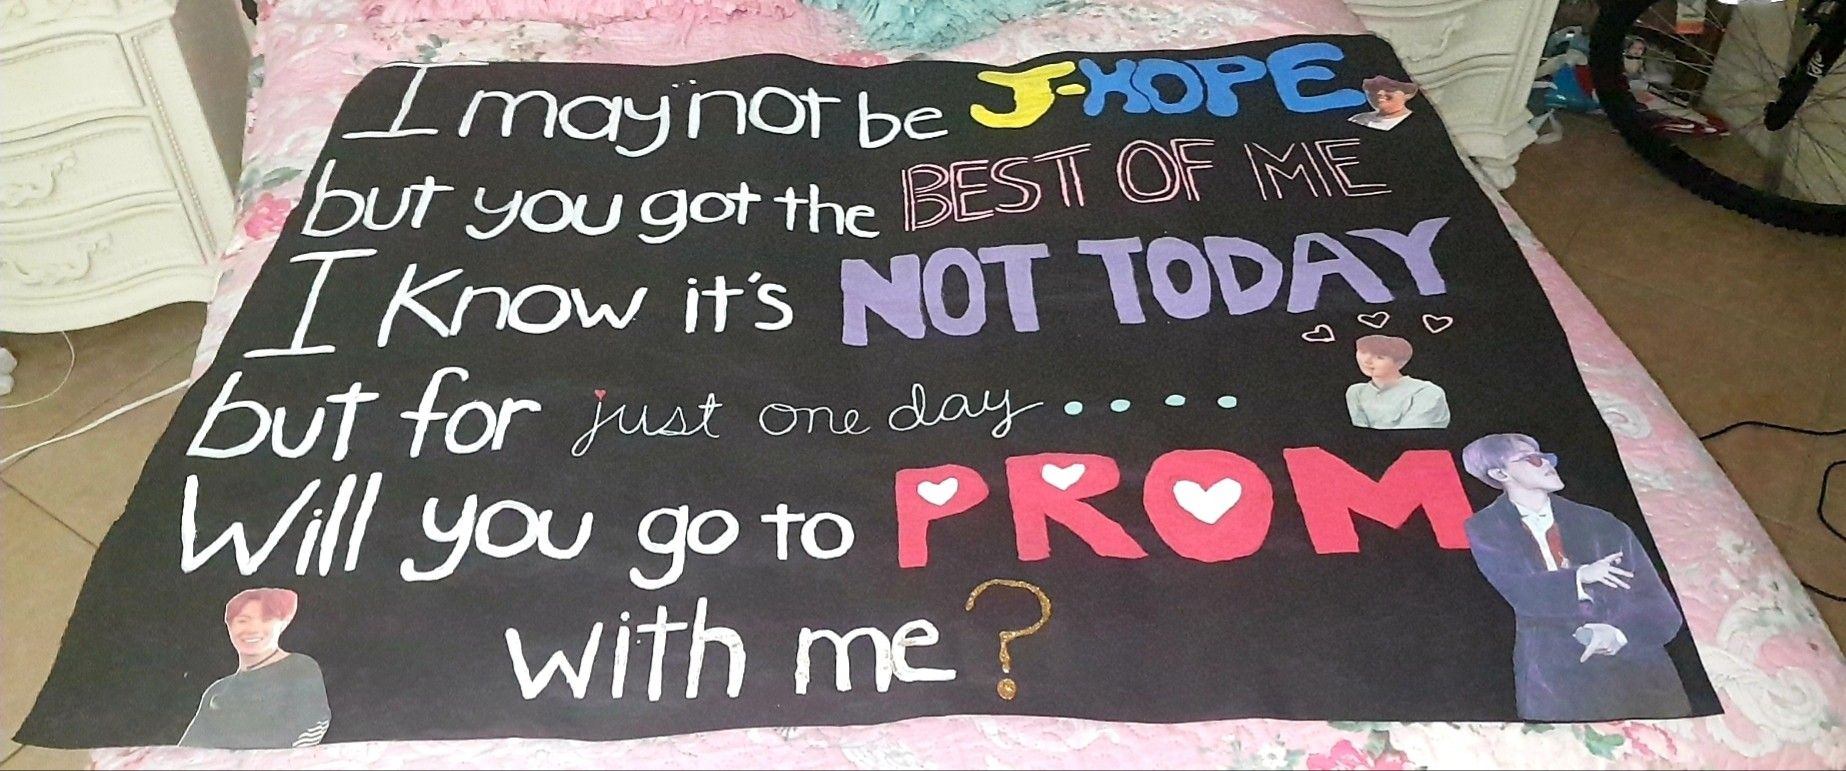 Bts Inspired Promposal Homecoming Proposal Cute Prom Proposals Prom Proposal